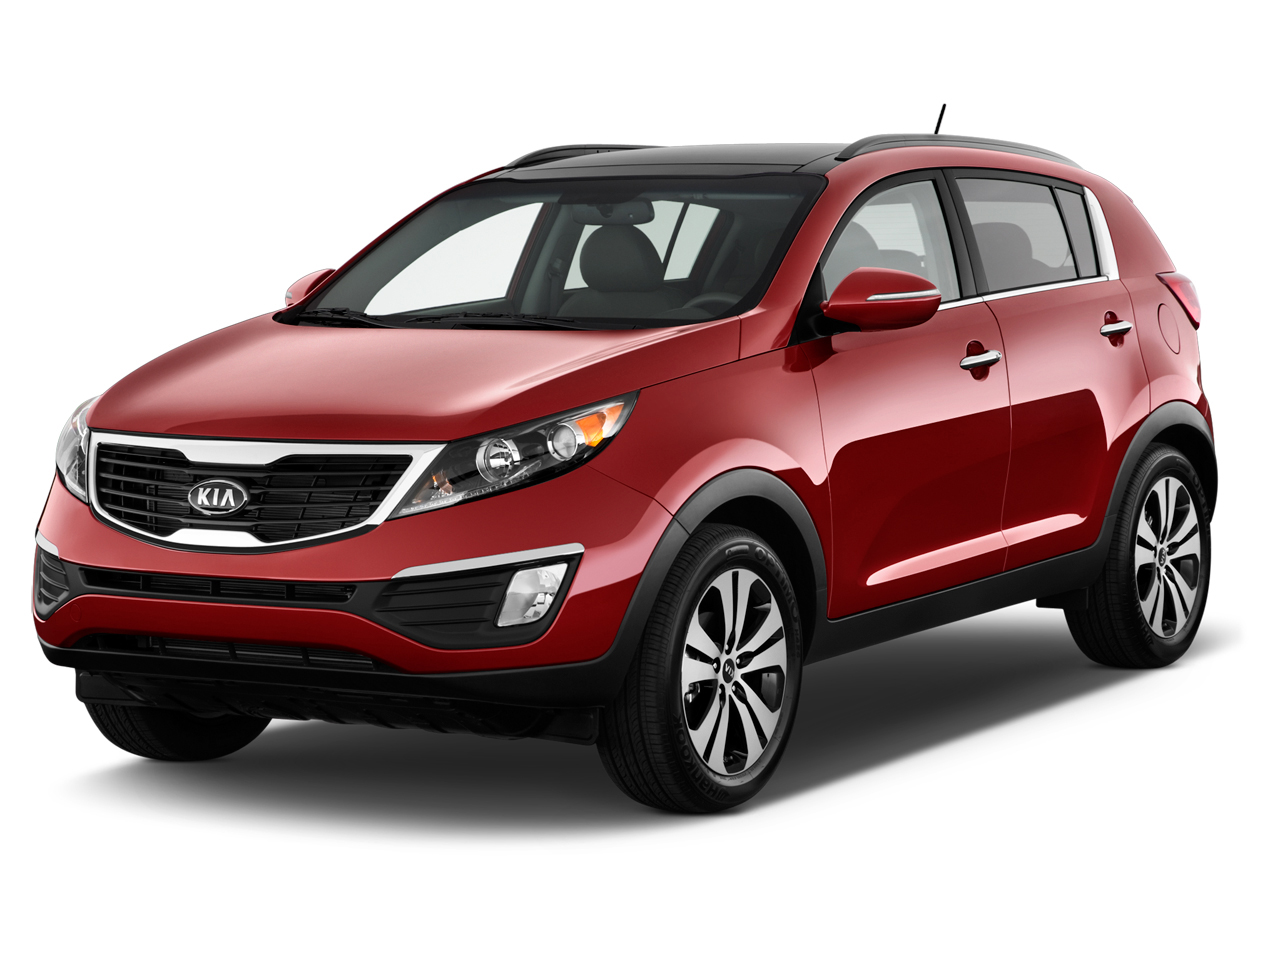 2012 kia sportage 2wd 4 door ex angular front exterior. Black Bedroom Furniture Sets. Home Design Ideas